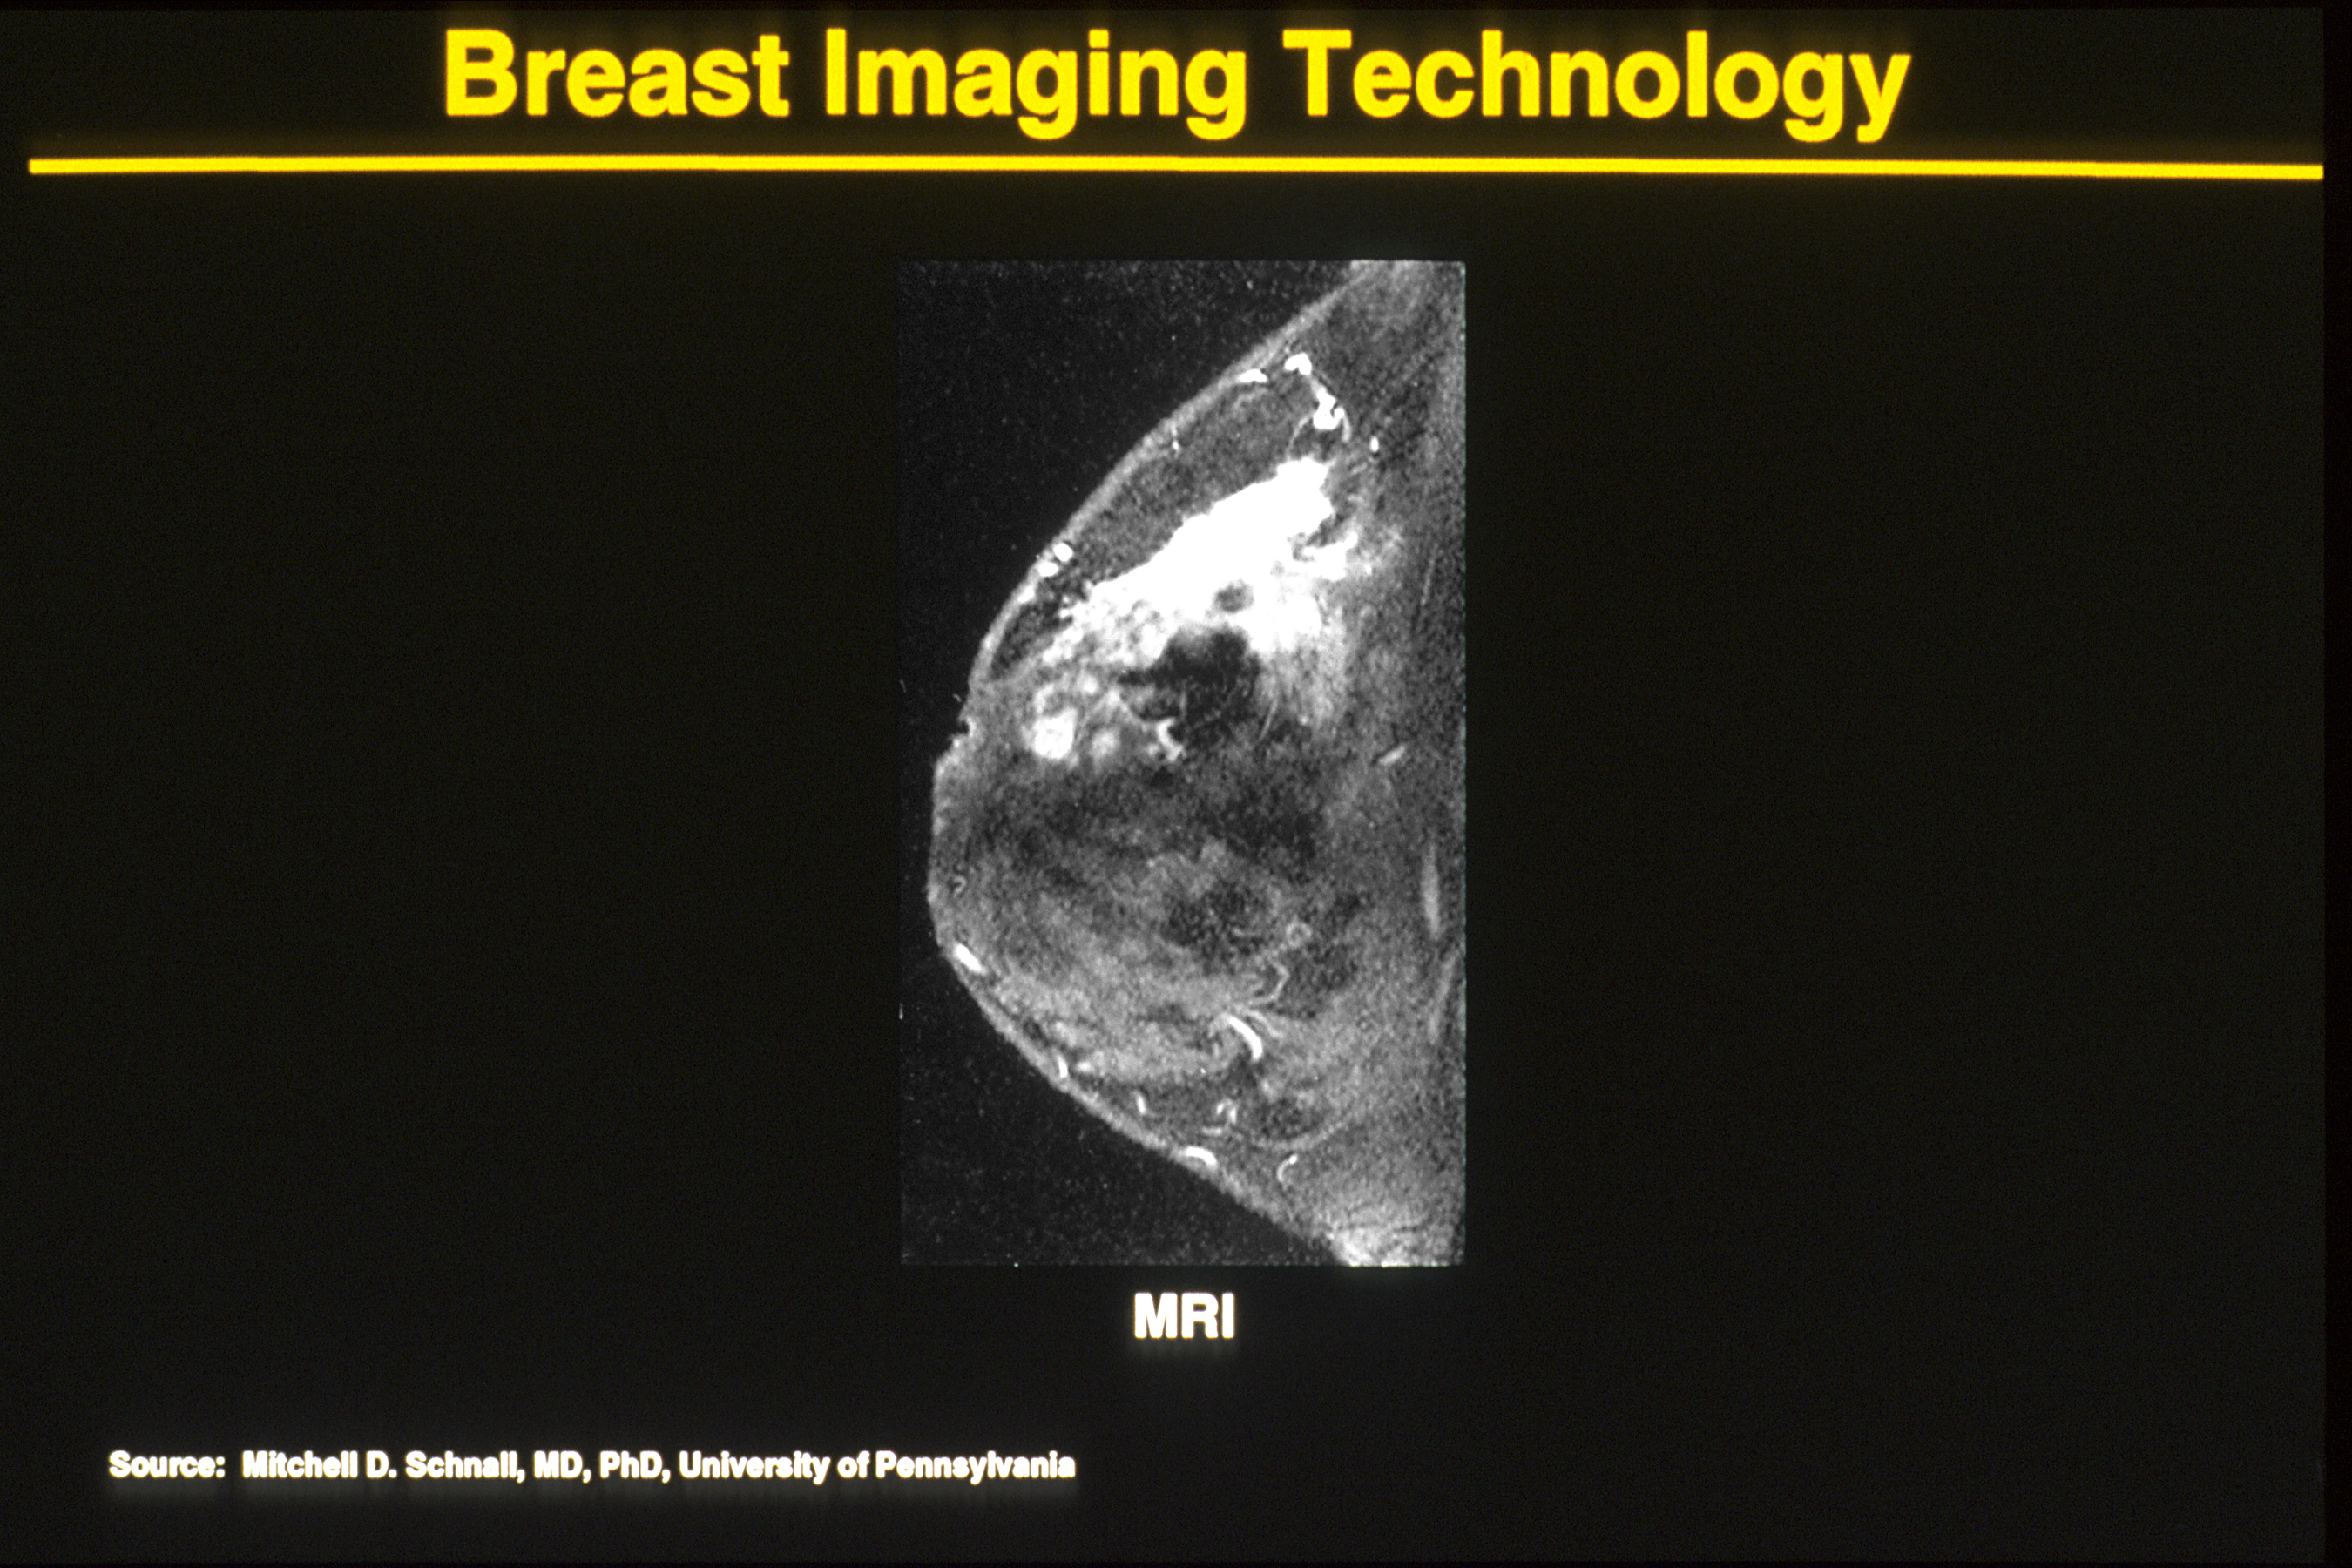 Pictures of breast mri